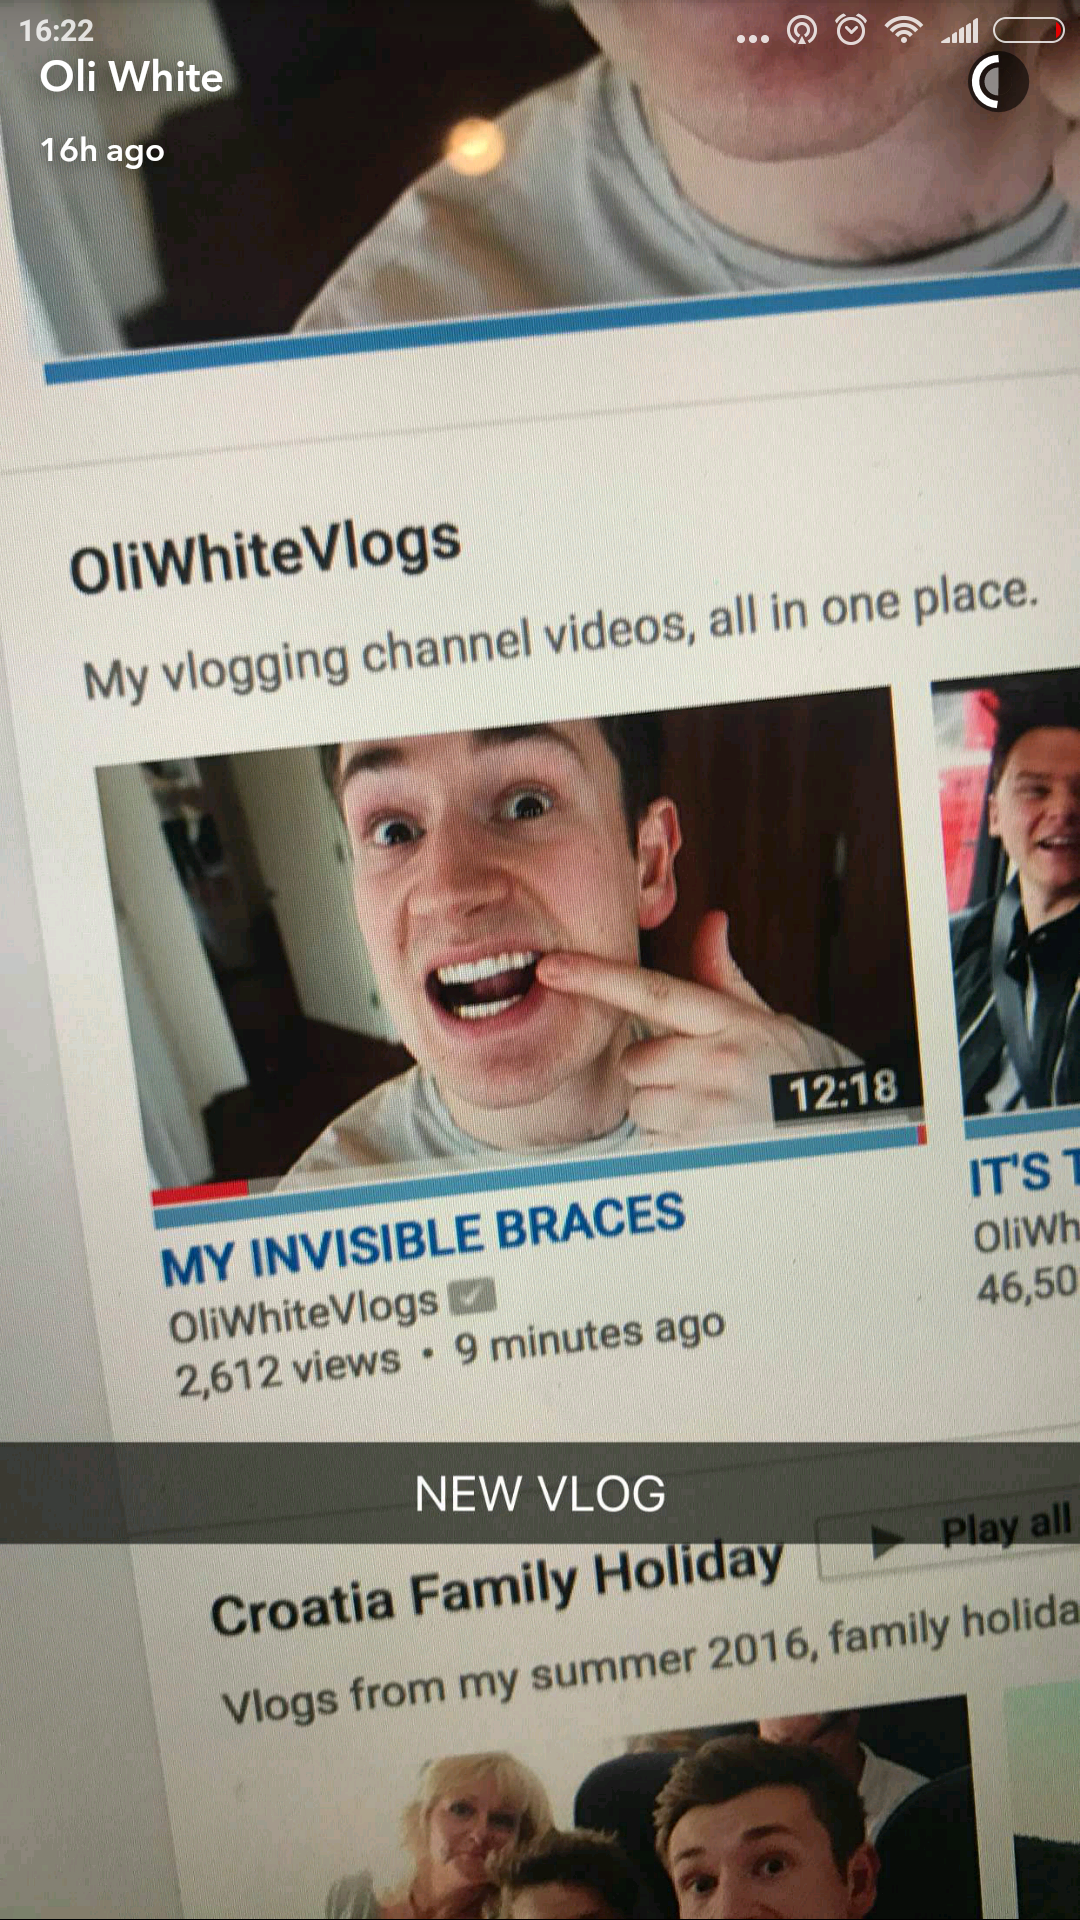 Oli White uses Snapchat to create vlog teasers